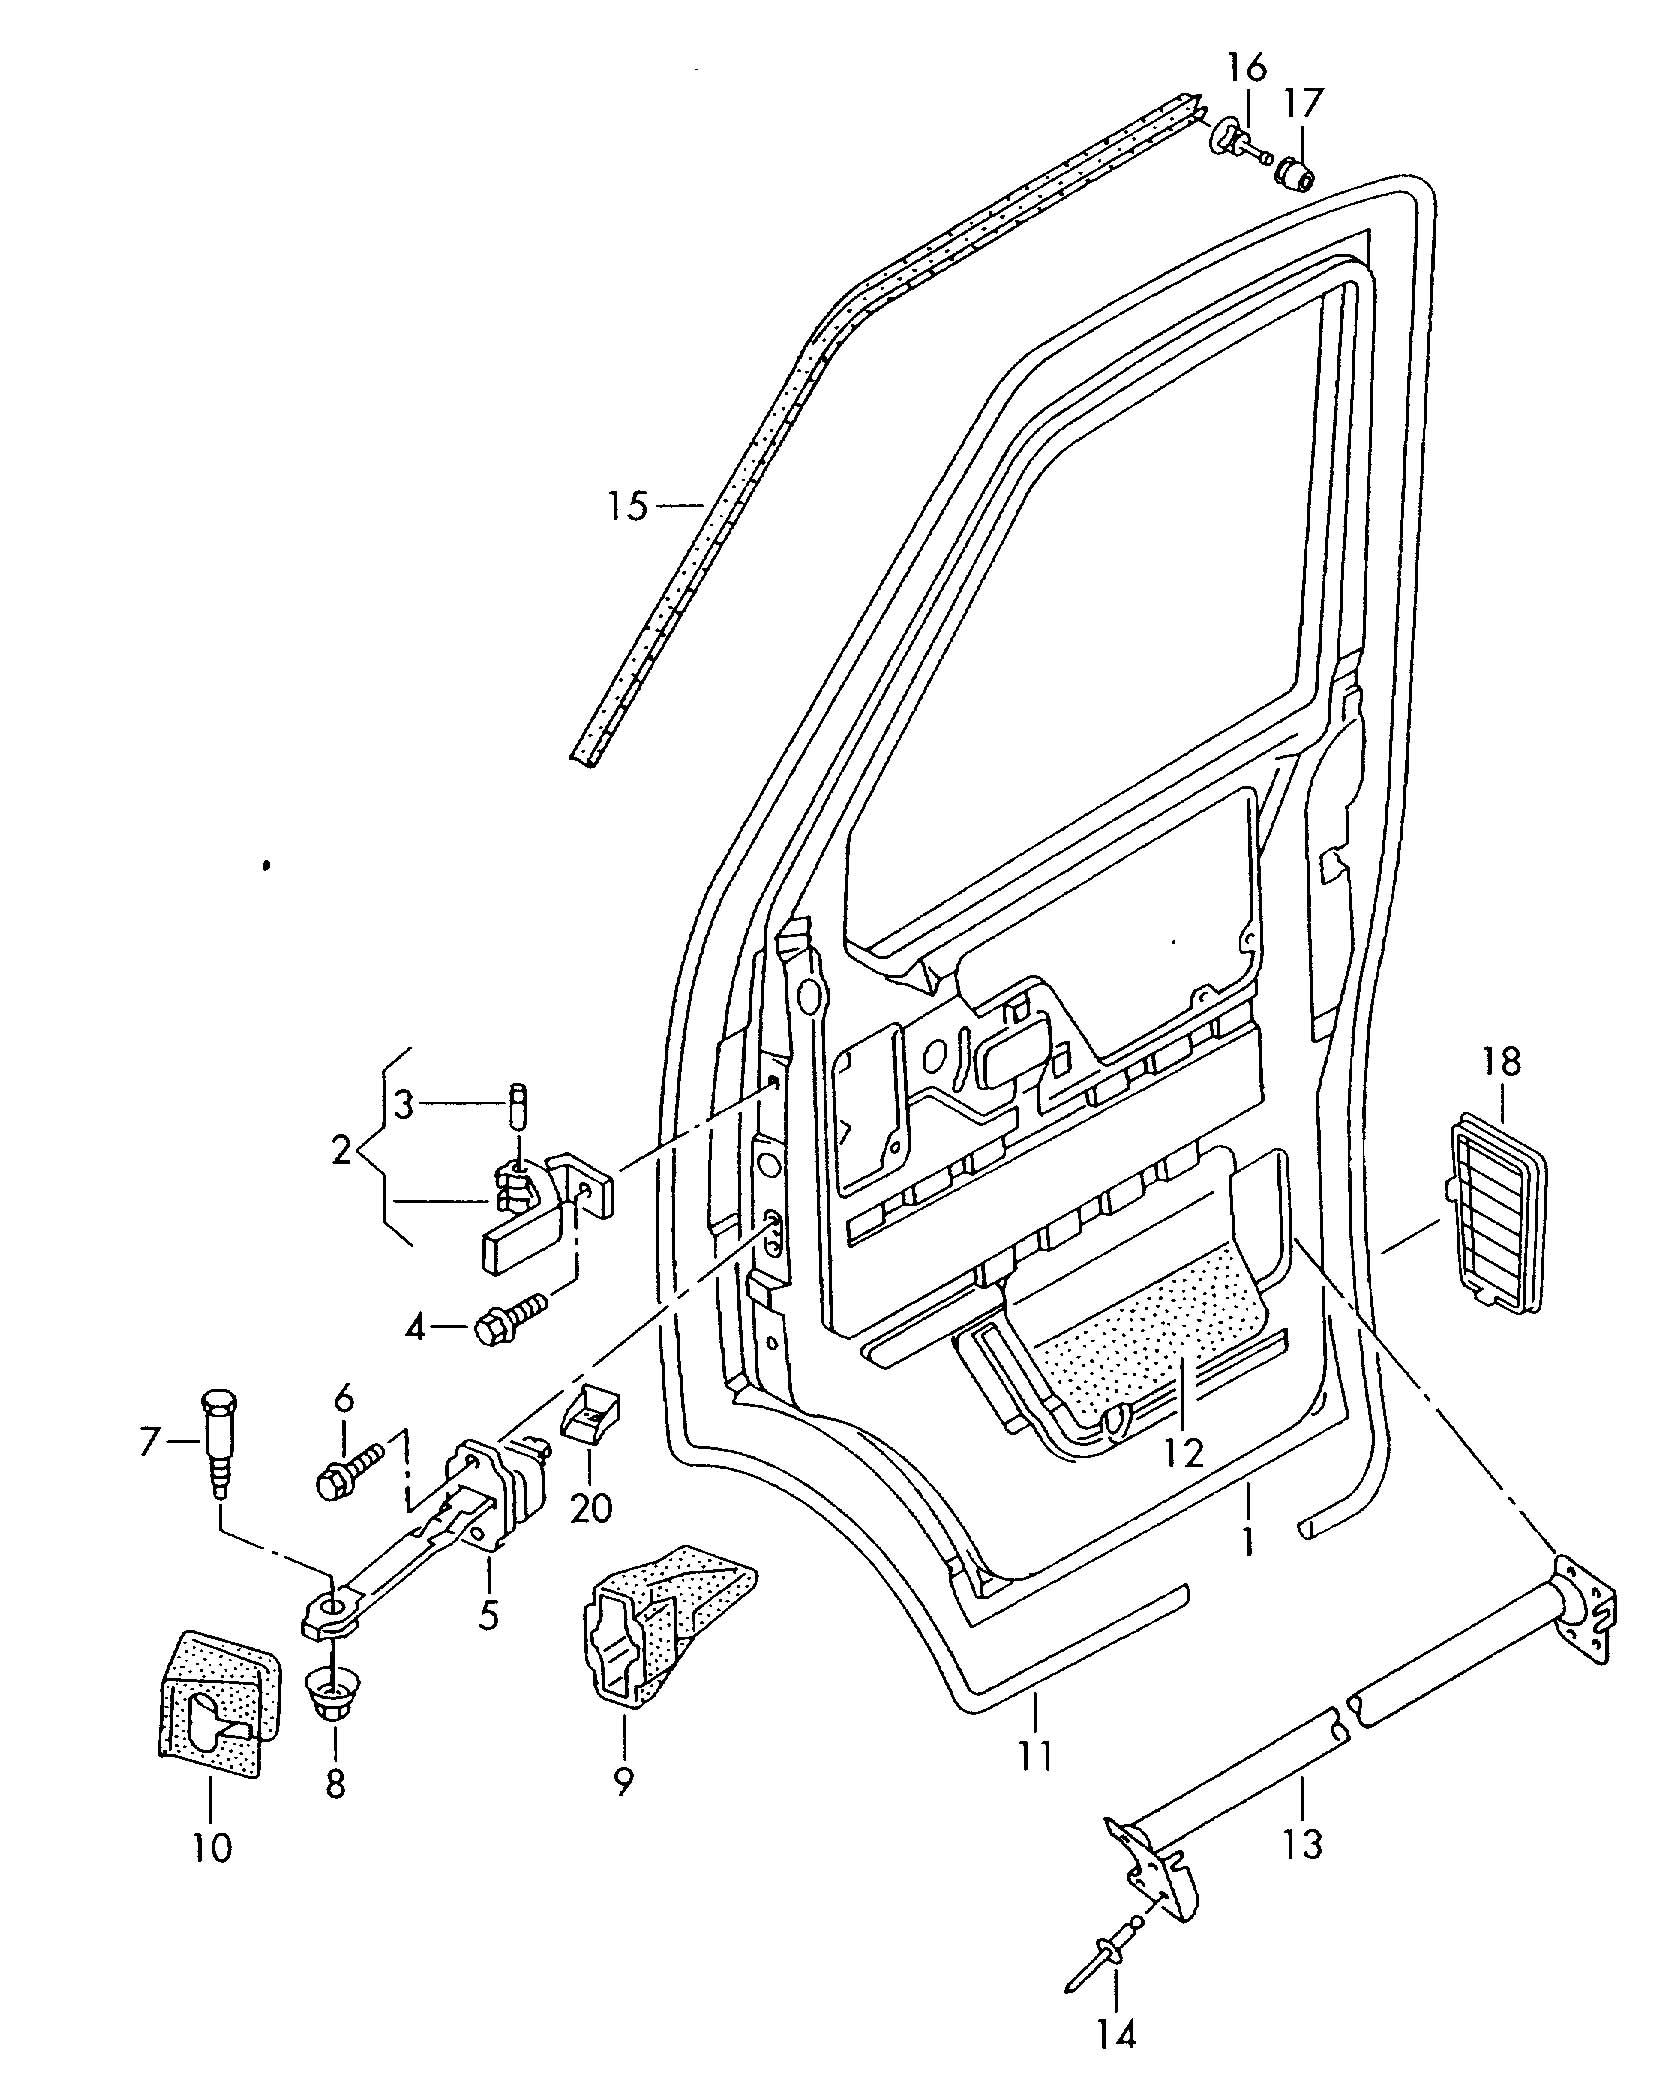 toyota pickup wiring diagrams toyota 22r engine parts